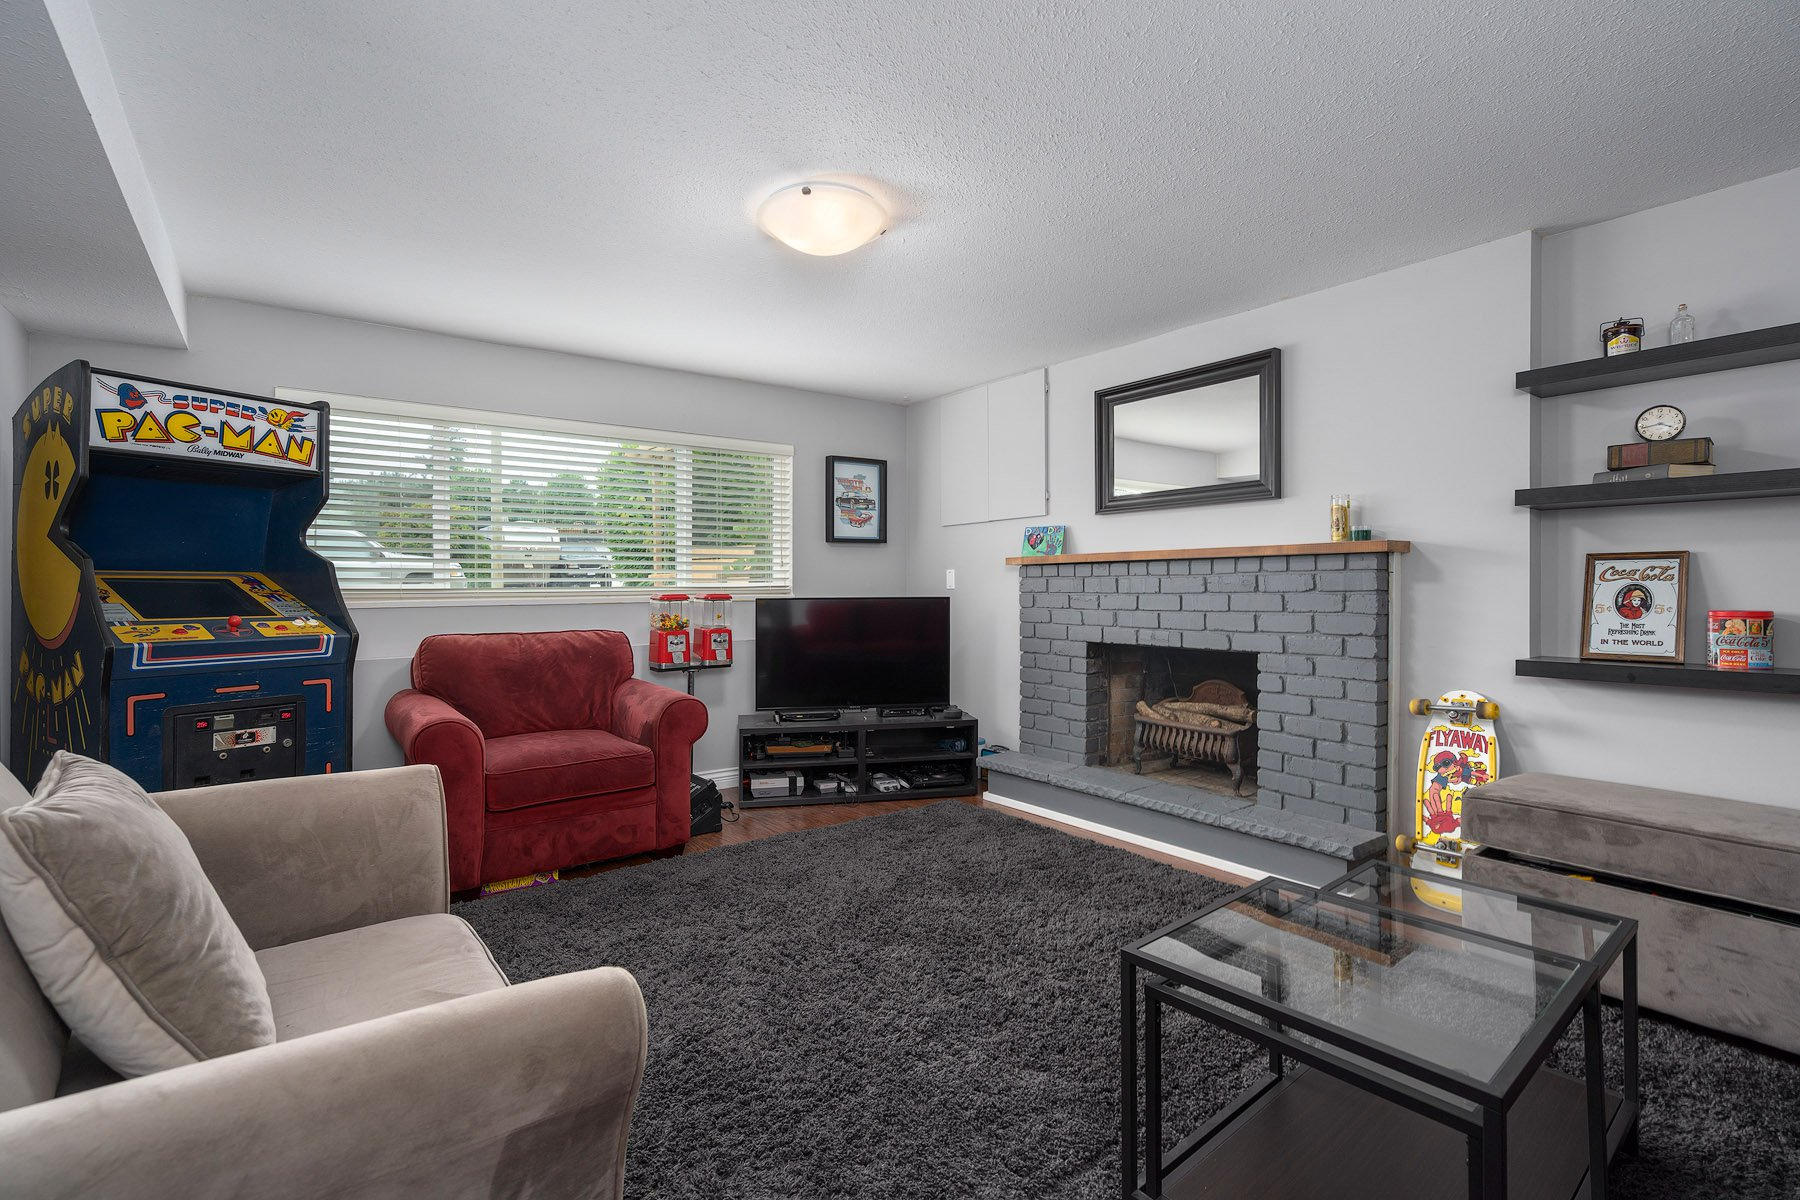 Photo 17: Photos: 423 MONTGOMERY Street in Coquitlam: Central Coquitlam House for sale : MLS®# R2380693